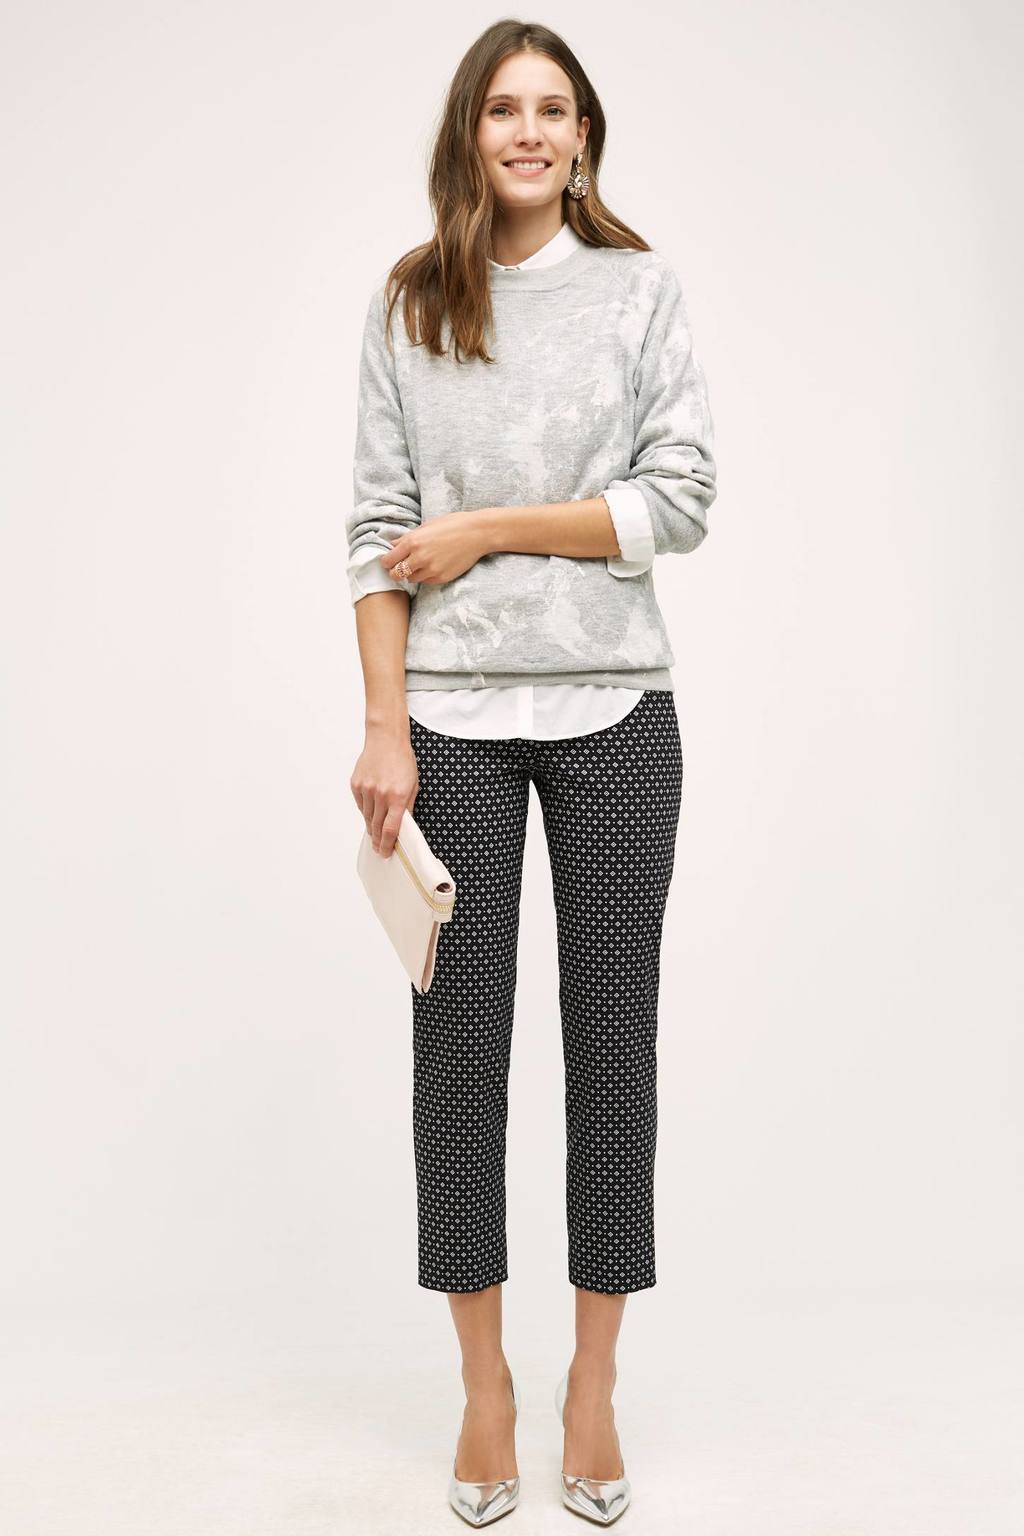 Finley Capri Trousers - pattern: plain; style: capri; waist: mid/regular rise; secondary colour: white; predominant colour: navy; length: calf length; fibres: cotton - mix; fit: slim leg; pattern type: fabric; texture group: woven light midweight; occasions: creative work; season: s/s 2016; wardrobe: basic